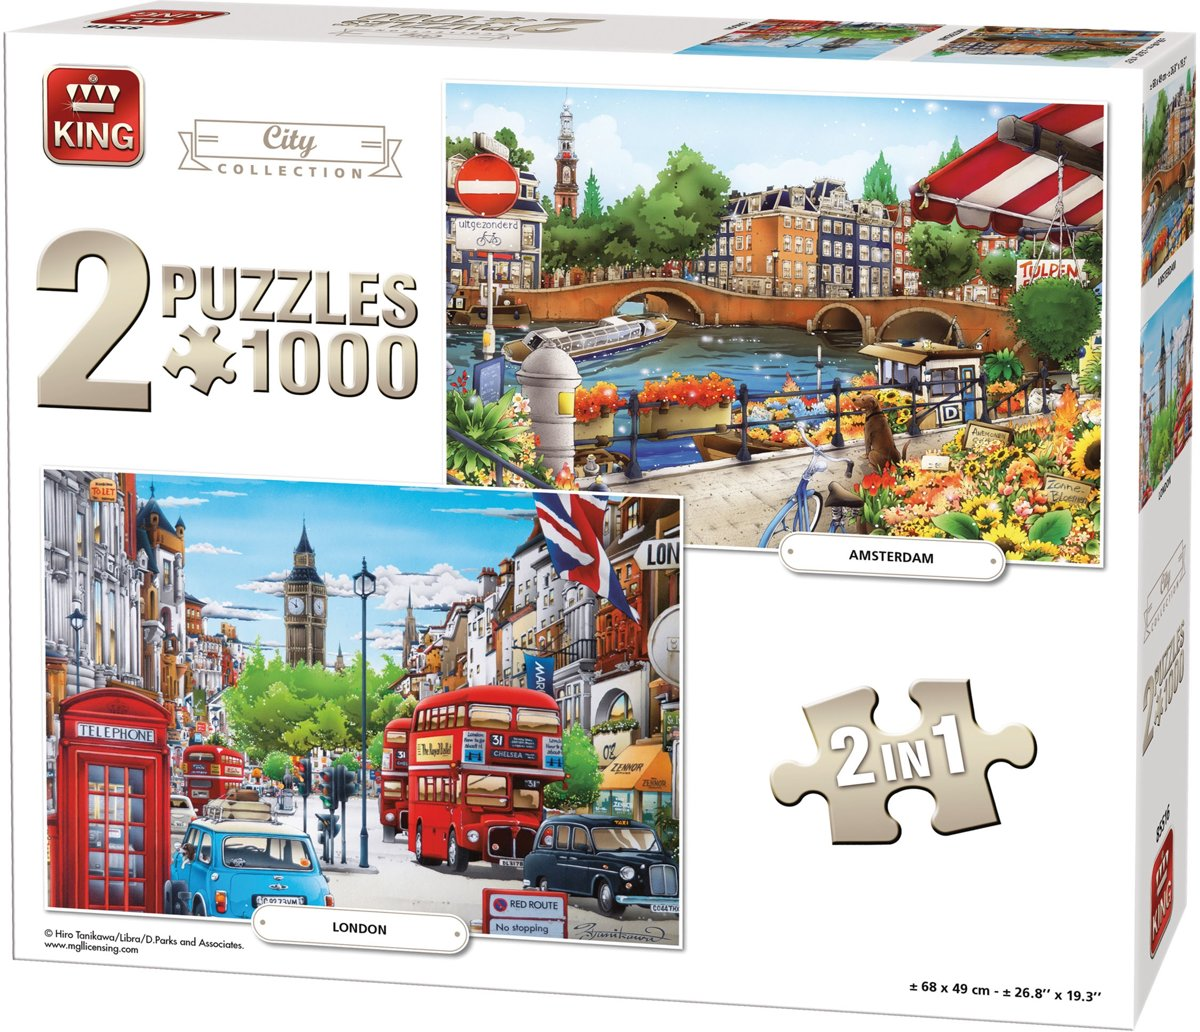 2-puzzles-amsterdam-london